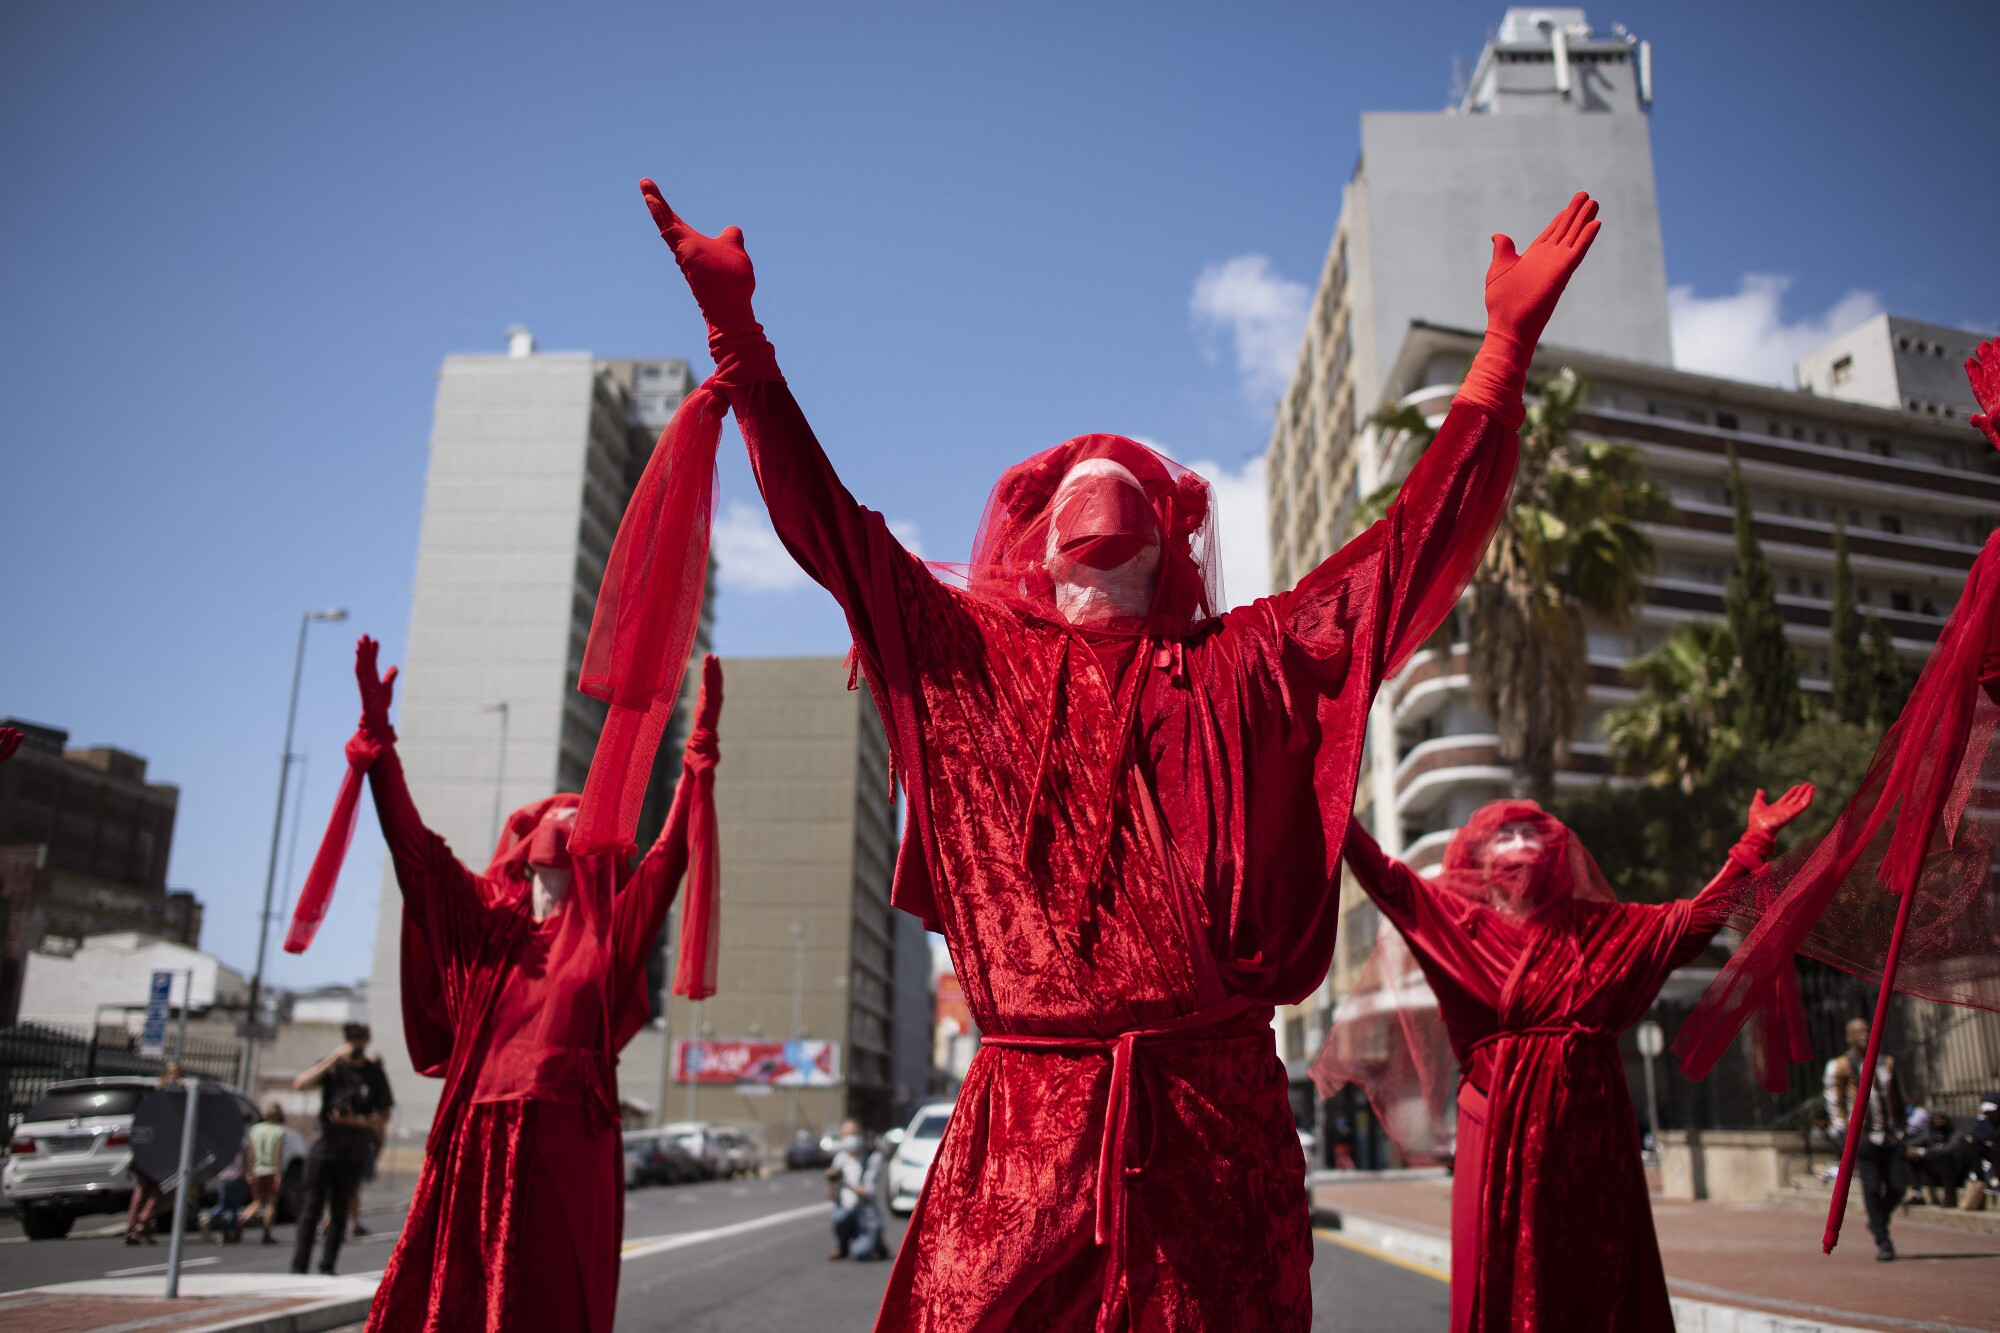 Outdoors, three people dressed in red lift their arms to the sky.